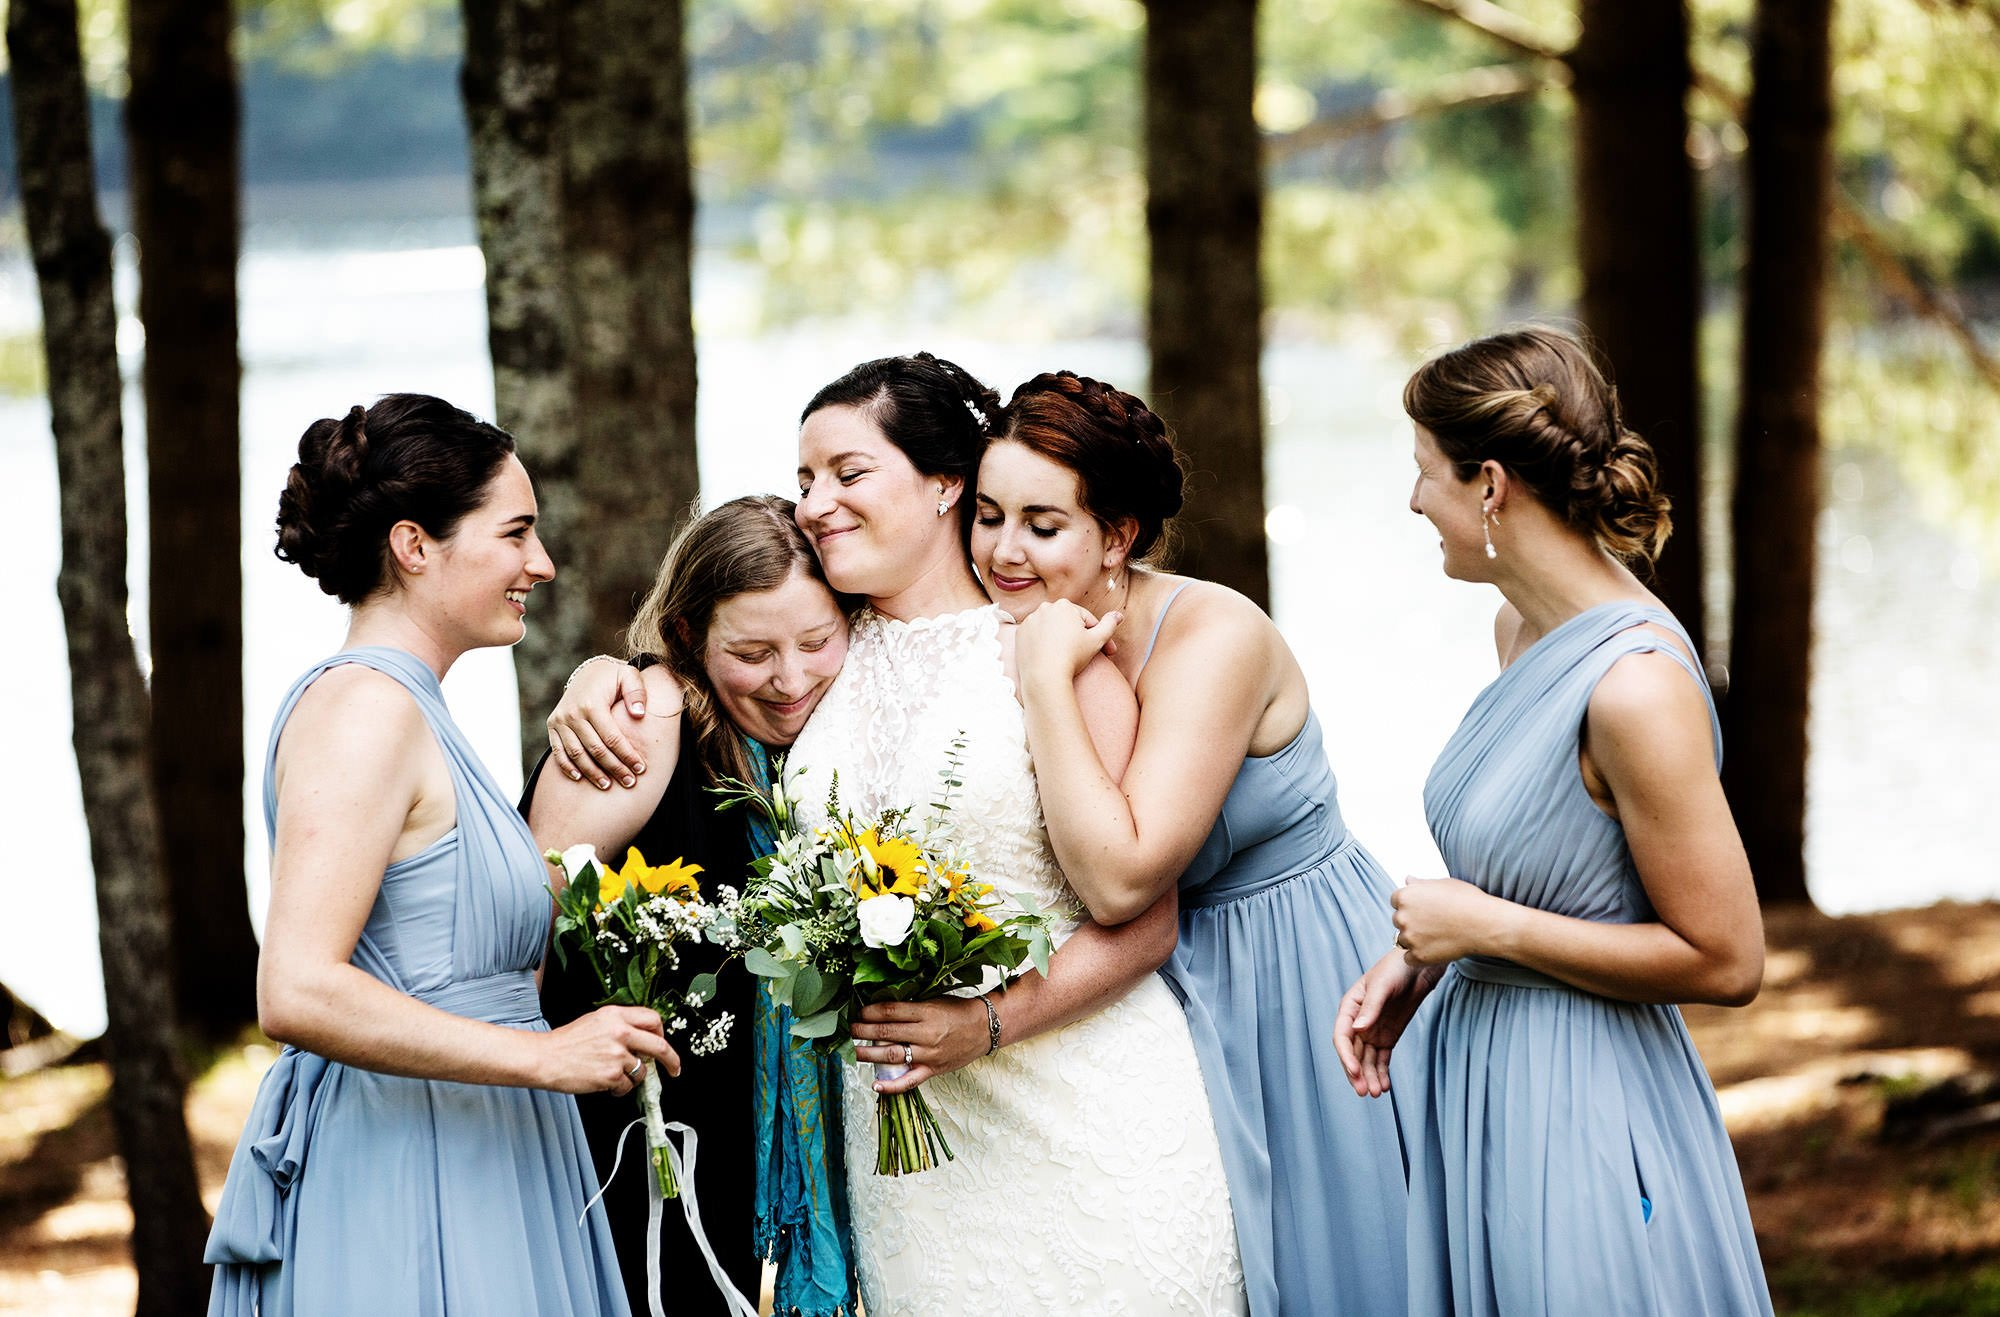 Maine Lakeside Cabin wedding  I  The bride hugs her friends following the ceremony.